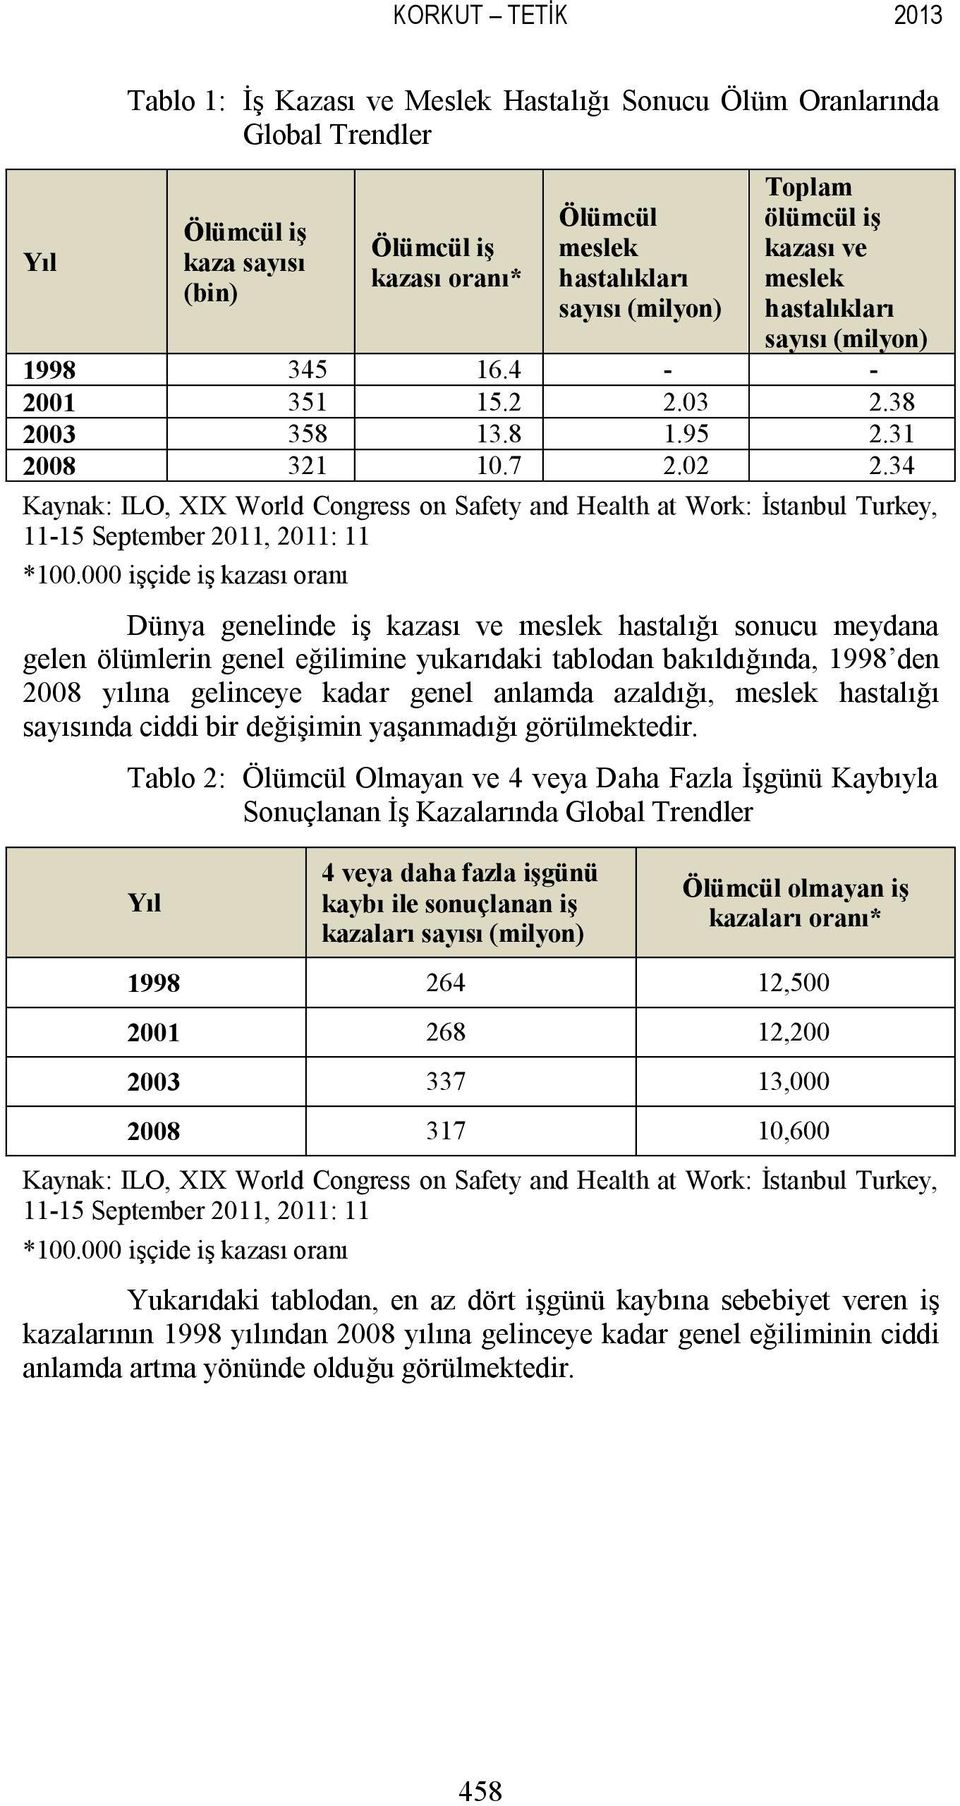 34 Kaynak: ILO, XIX World Congress on Safety and Health at Work: İstanbul Turkey, 11-15 September 2011, 2011: 11 *100.